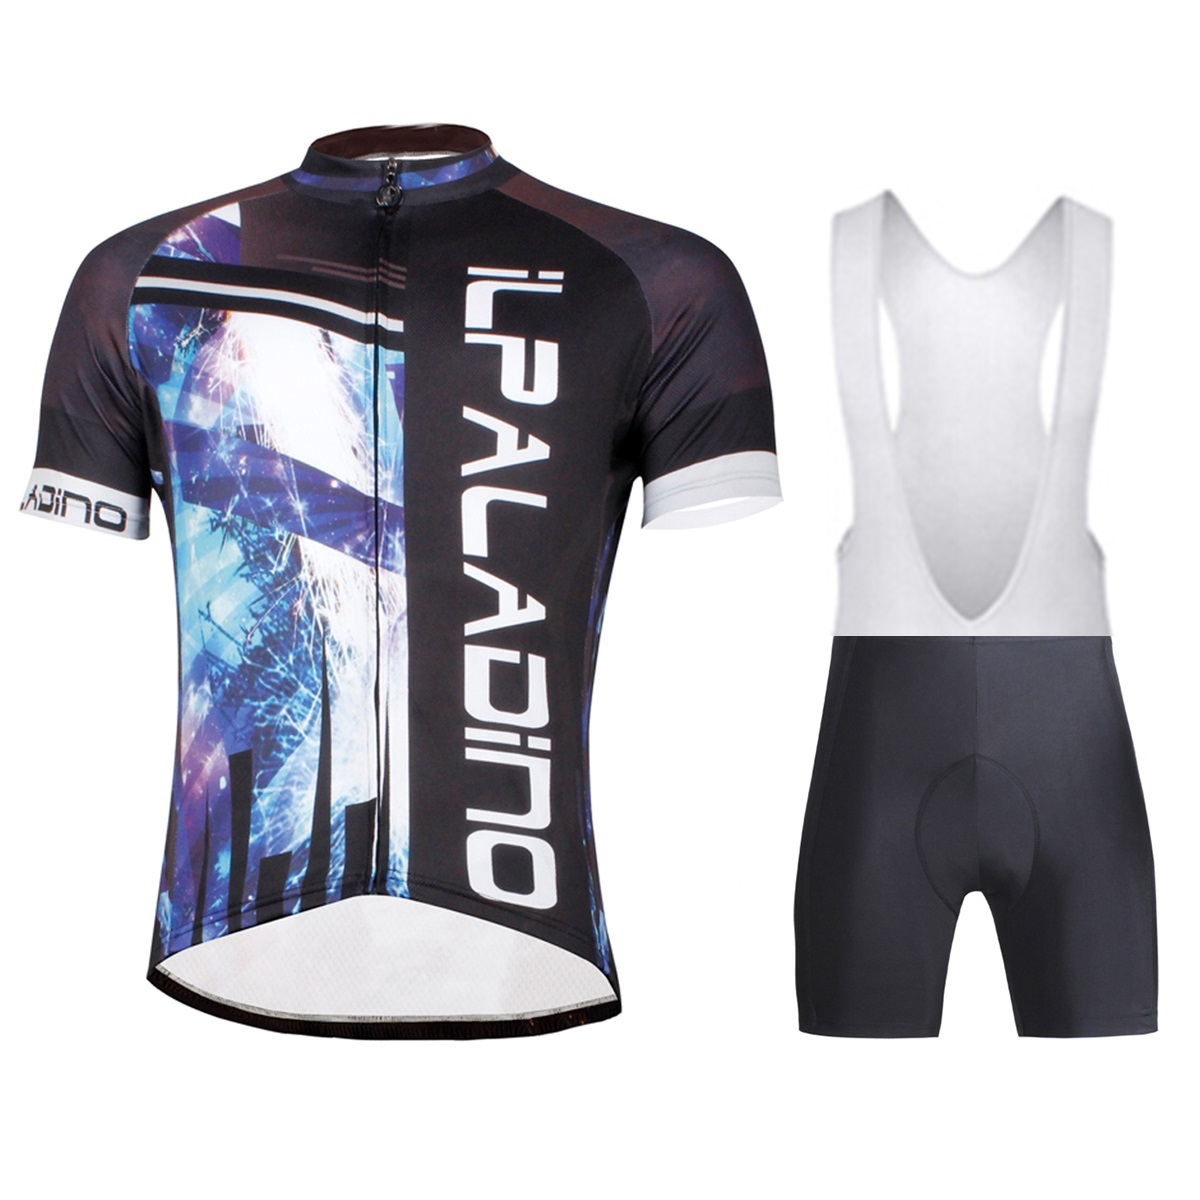 Top Quality Cycling Jerseys Cycling Brand Sportwear Men's Team Bike Racing Jersey New Bicycle Dress Free Shipping QI17DT9 176 top quality hot cycling jerseys red lotus summer cycling jersey 2017s anti uv female adequate quality sleeve cycling clothin